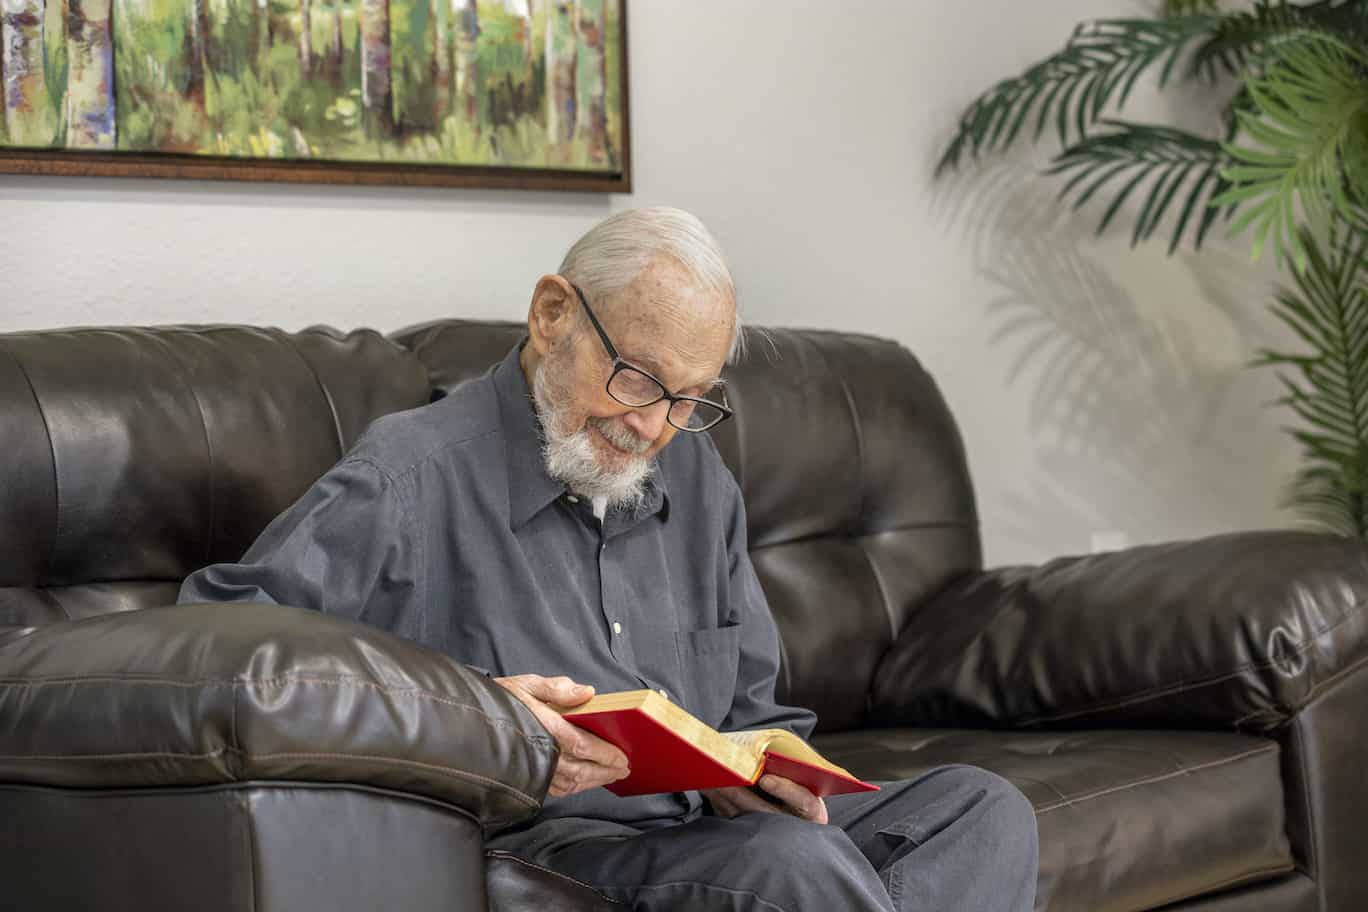 Senior man on couch reading book